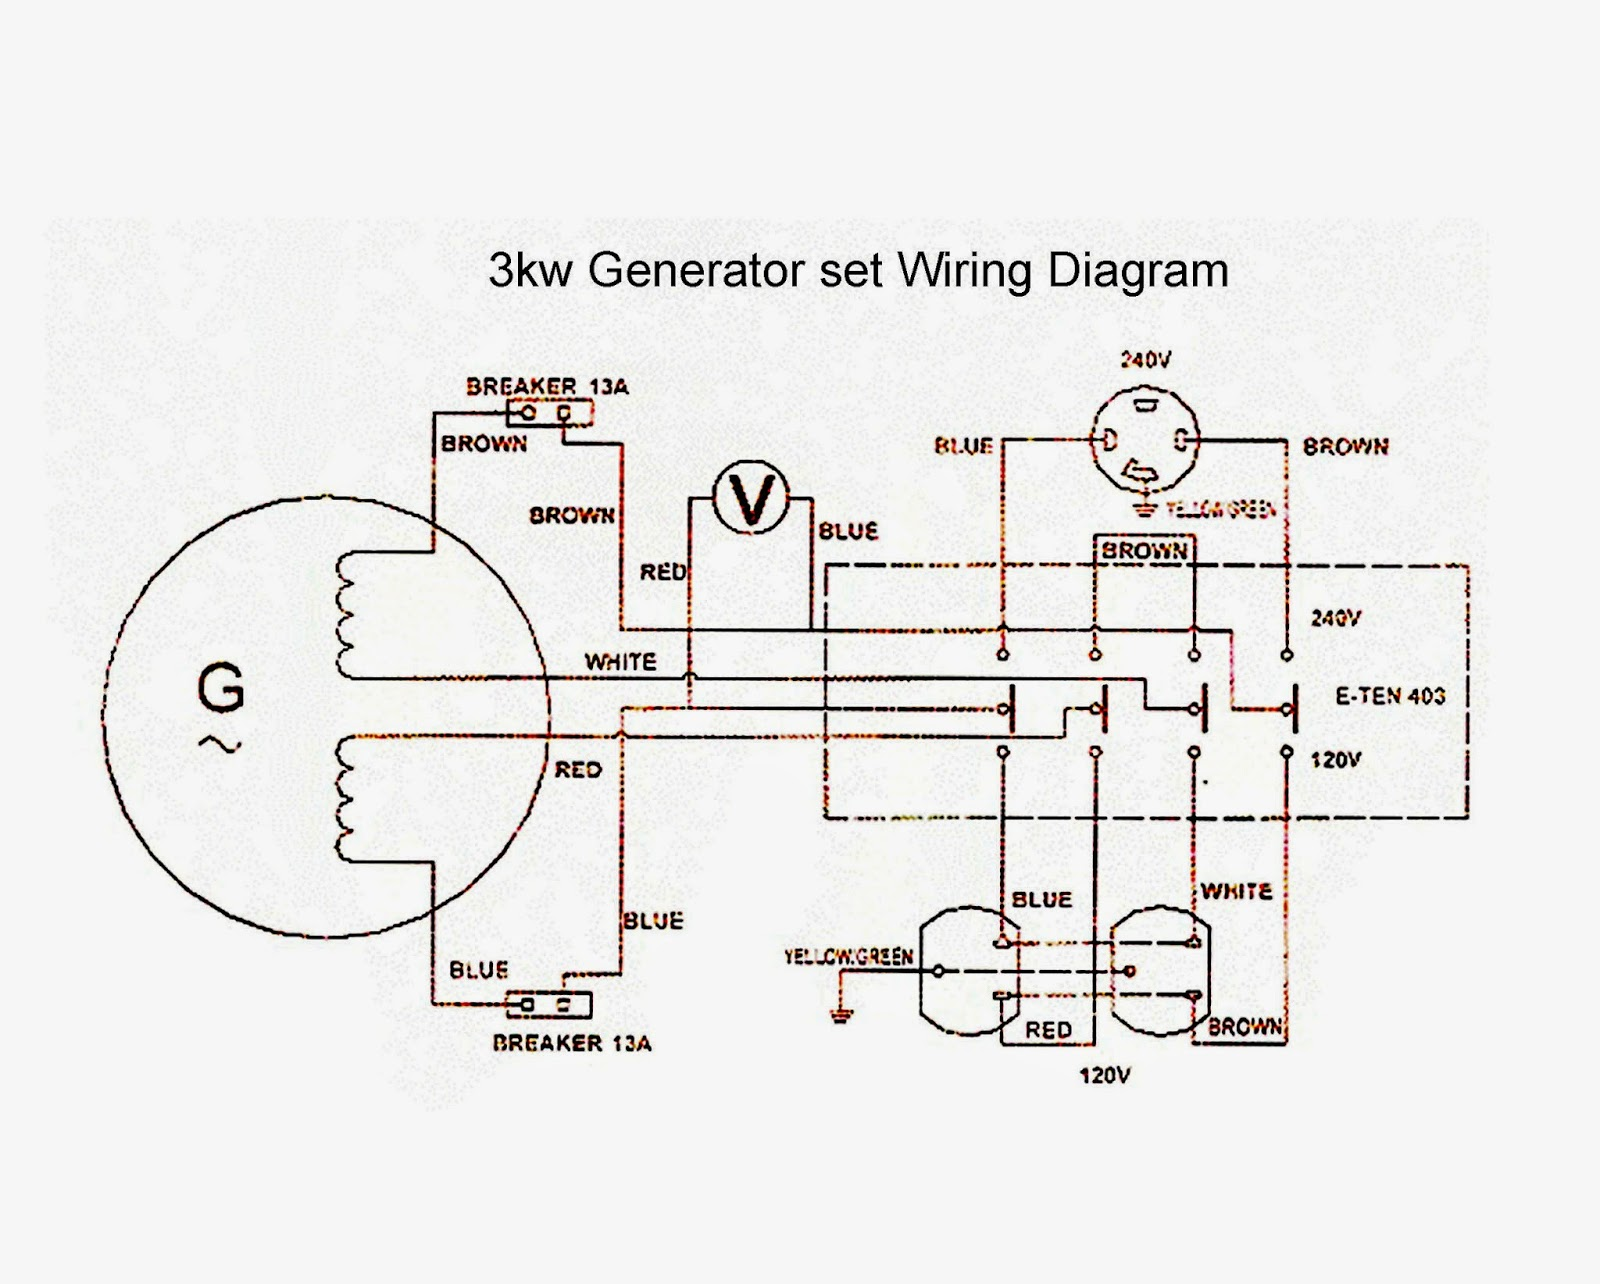 3000w+gensetswiringdiagram+1 28 [ wiring diagram of generator ] starter generator wiring generator wiring diagrams at alyssarenee.co